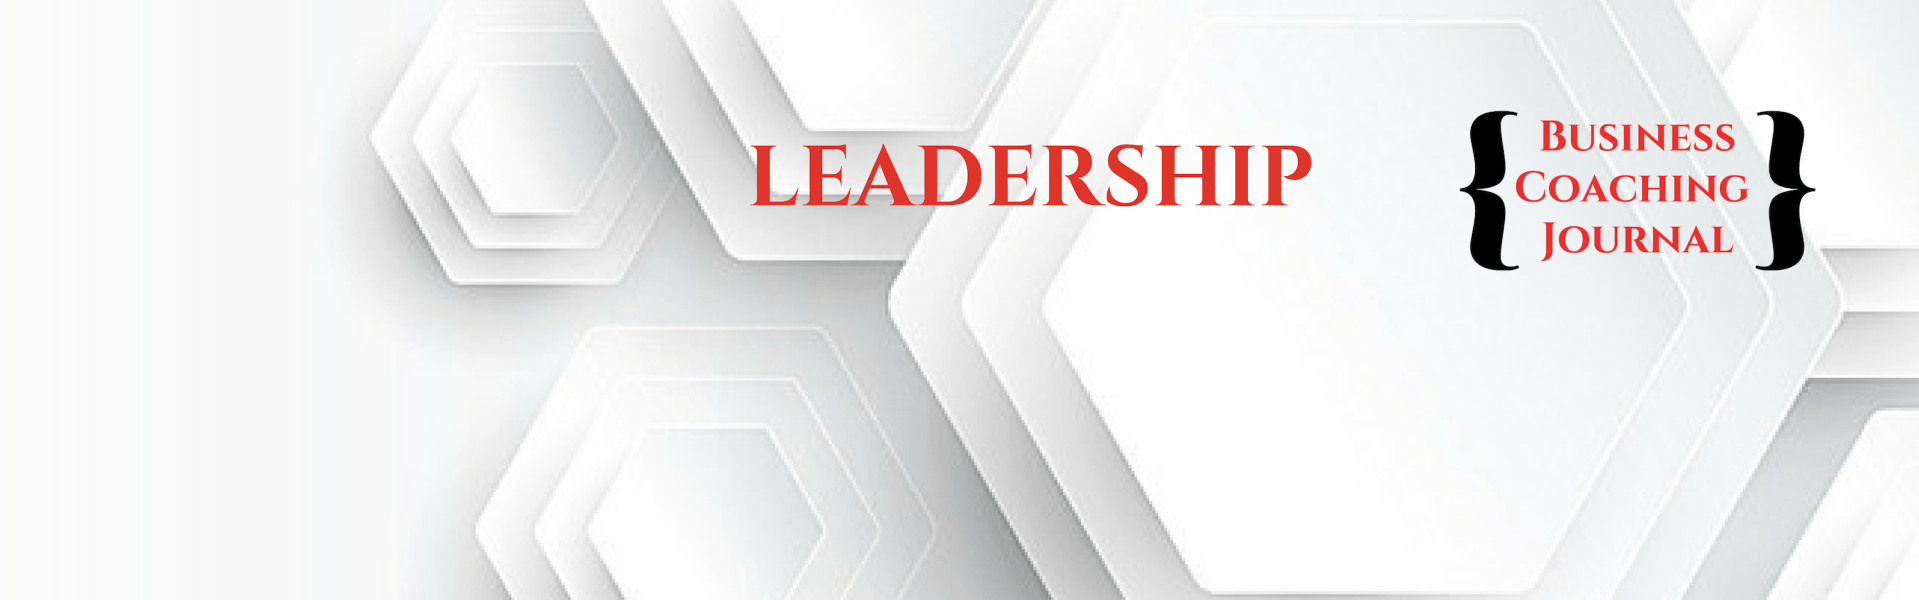 Leadership Articles Business Coaching Journal